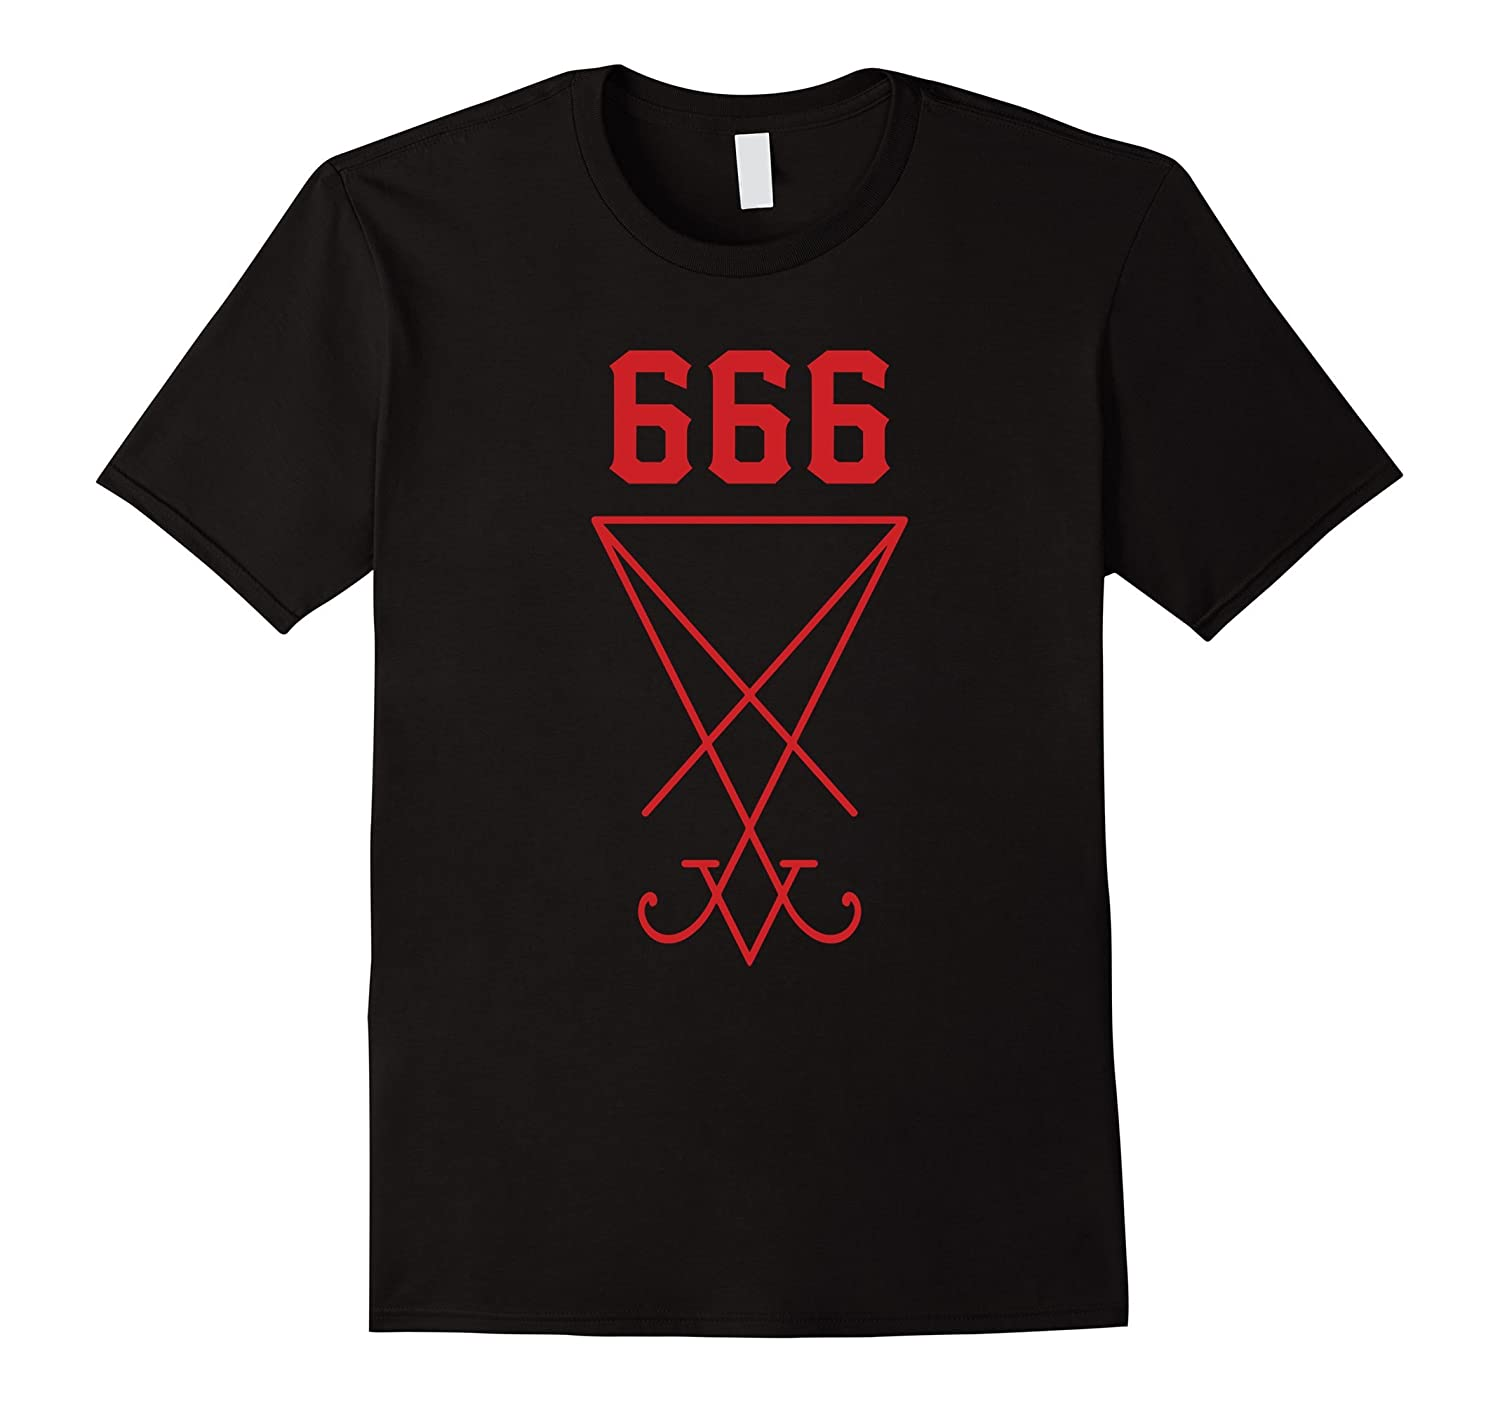 666 - Satanic Symbol T-Shirt (Sign of the Devil)-mt